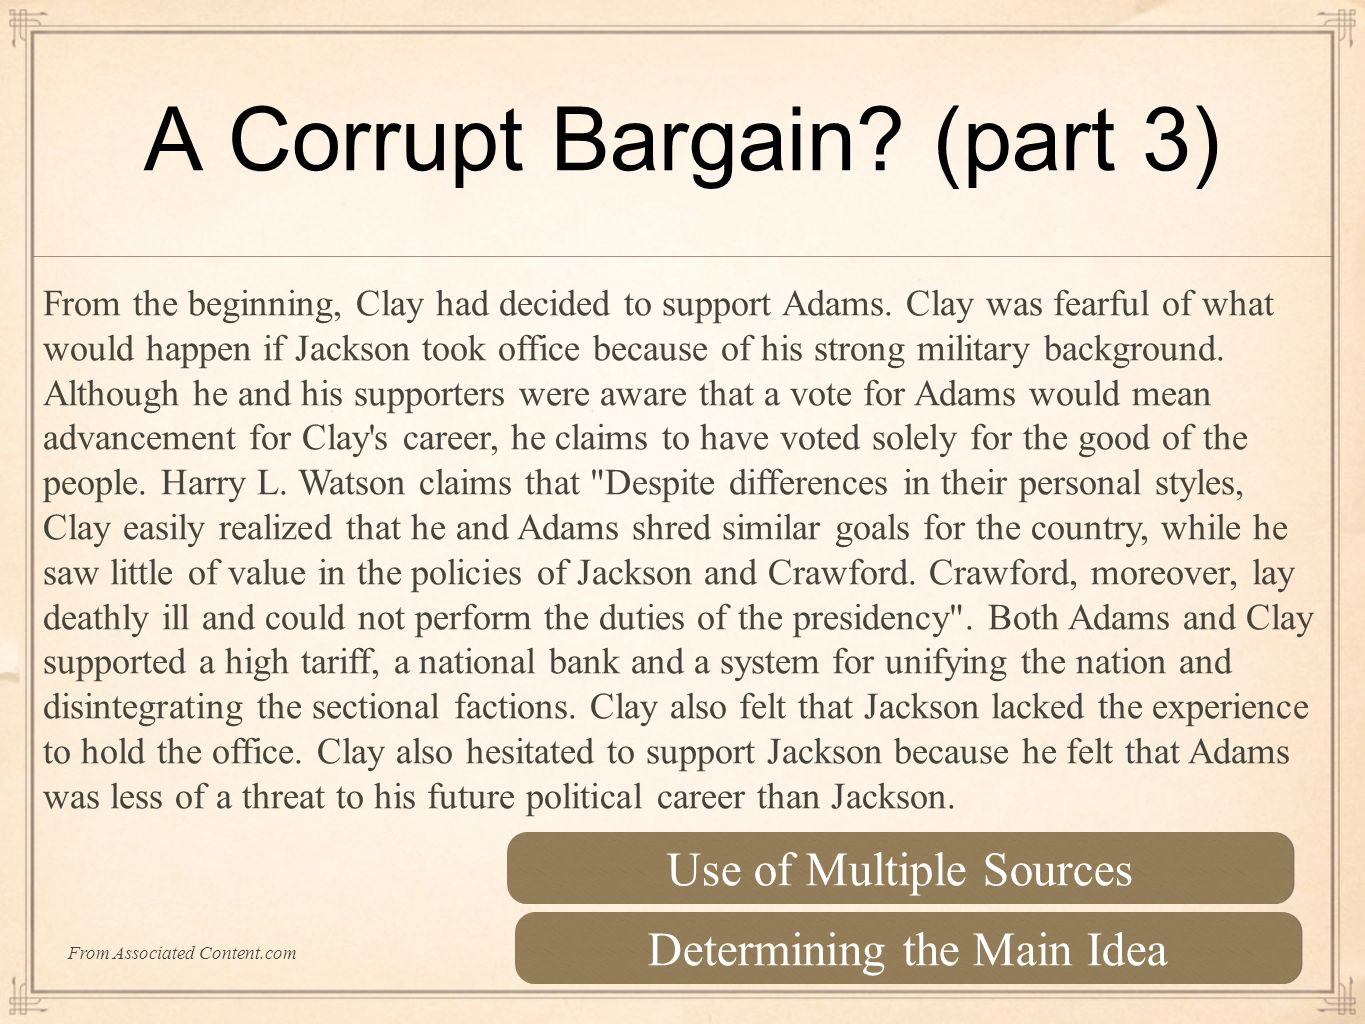 A Corrupt Bargain. (part 3) From the beginning, Clay had decided to support Adams.